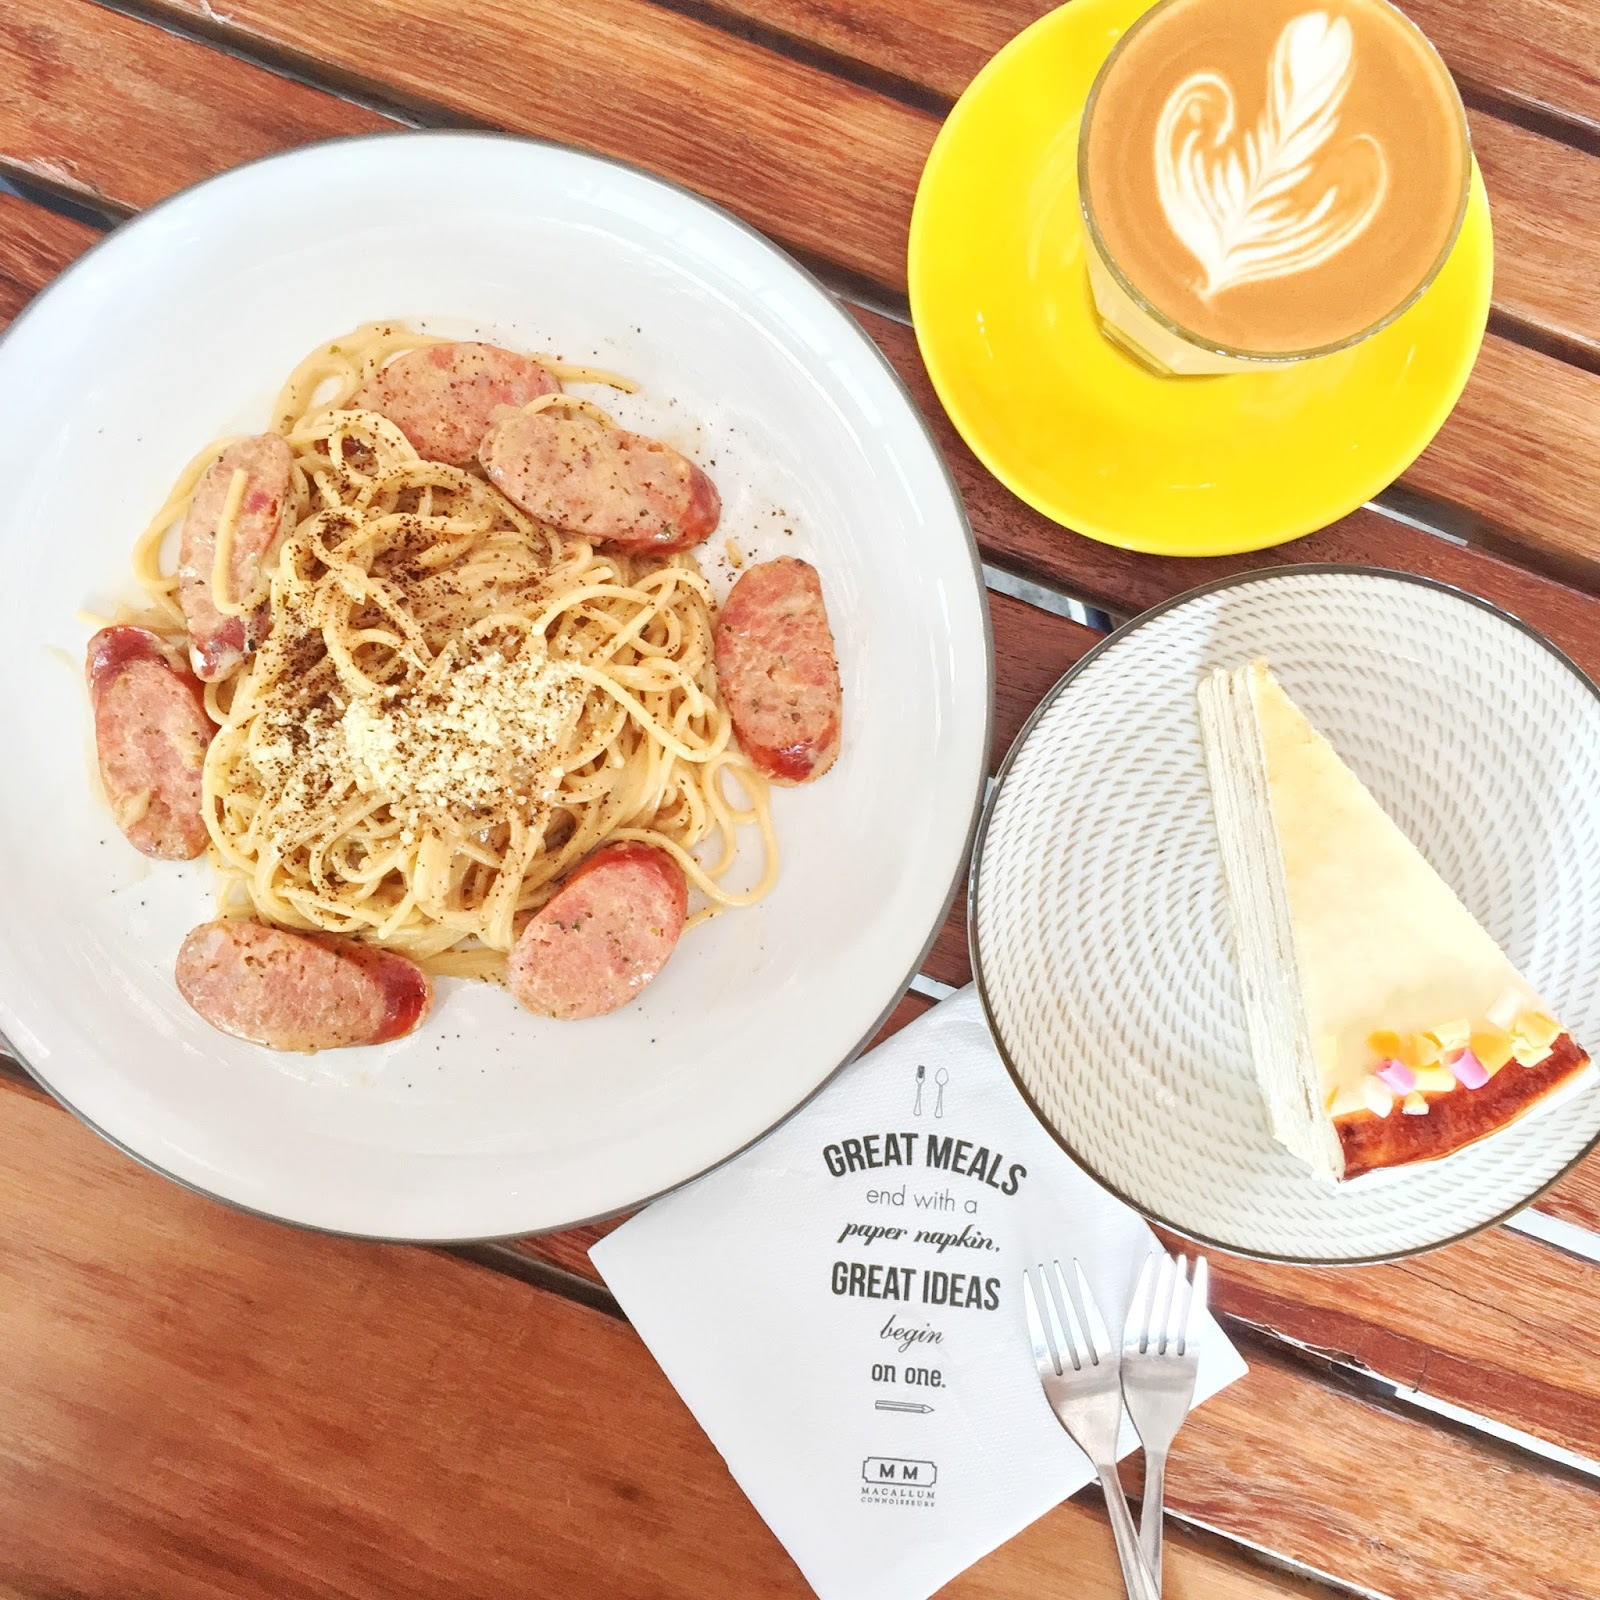 Penang Cafes - Macallum Connoisseurs Coffee Company